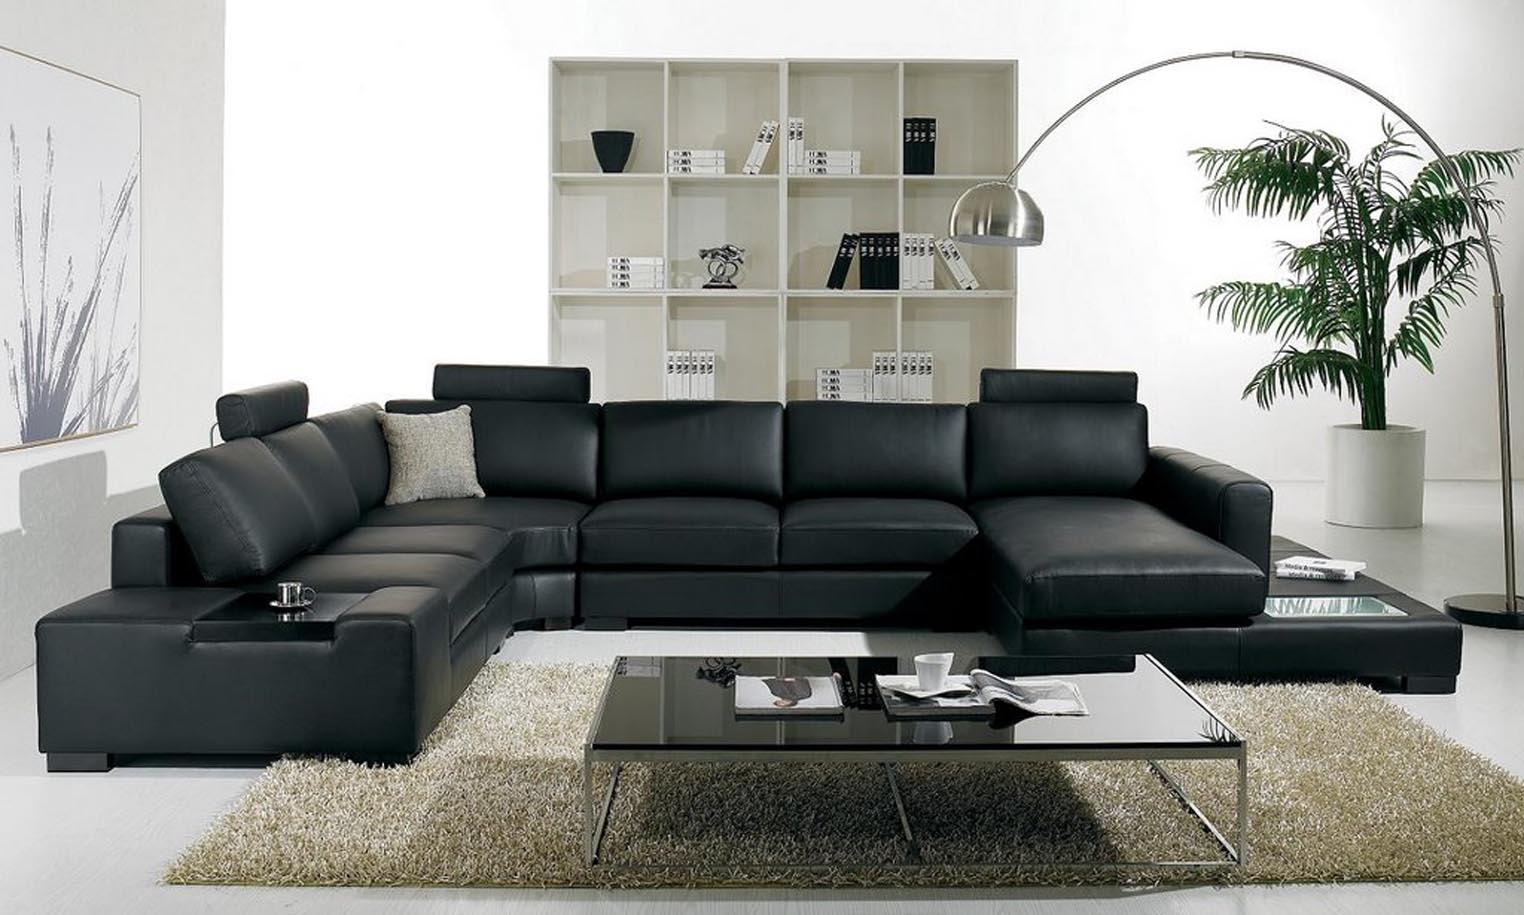 VIEW IN GALLERY Luxury Black Leather Sectional Sofa For Living Room Interior Decoration With Cool Glass Top Coffee Table